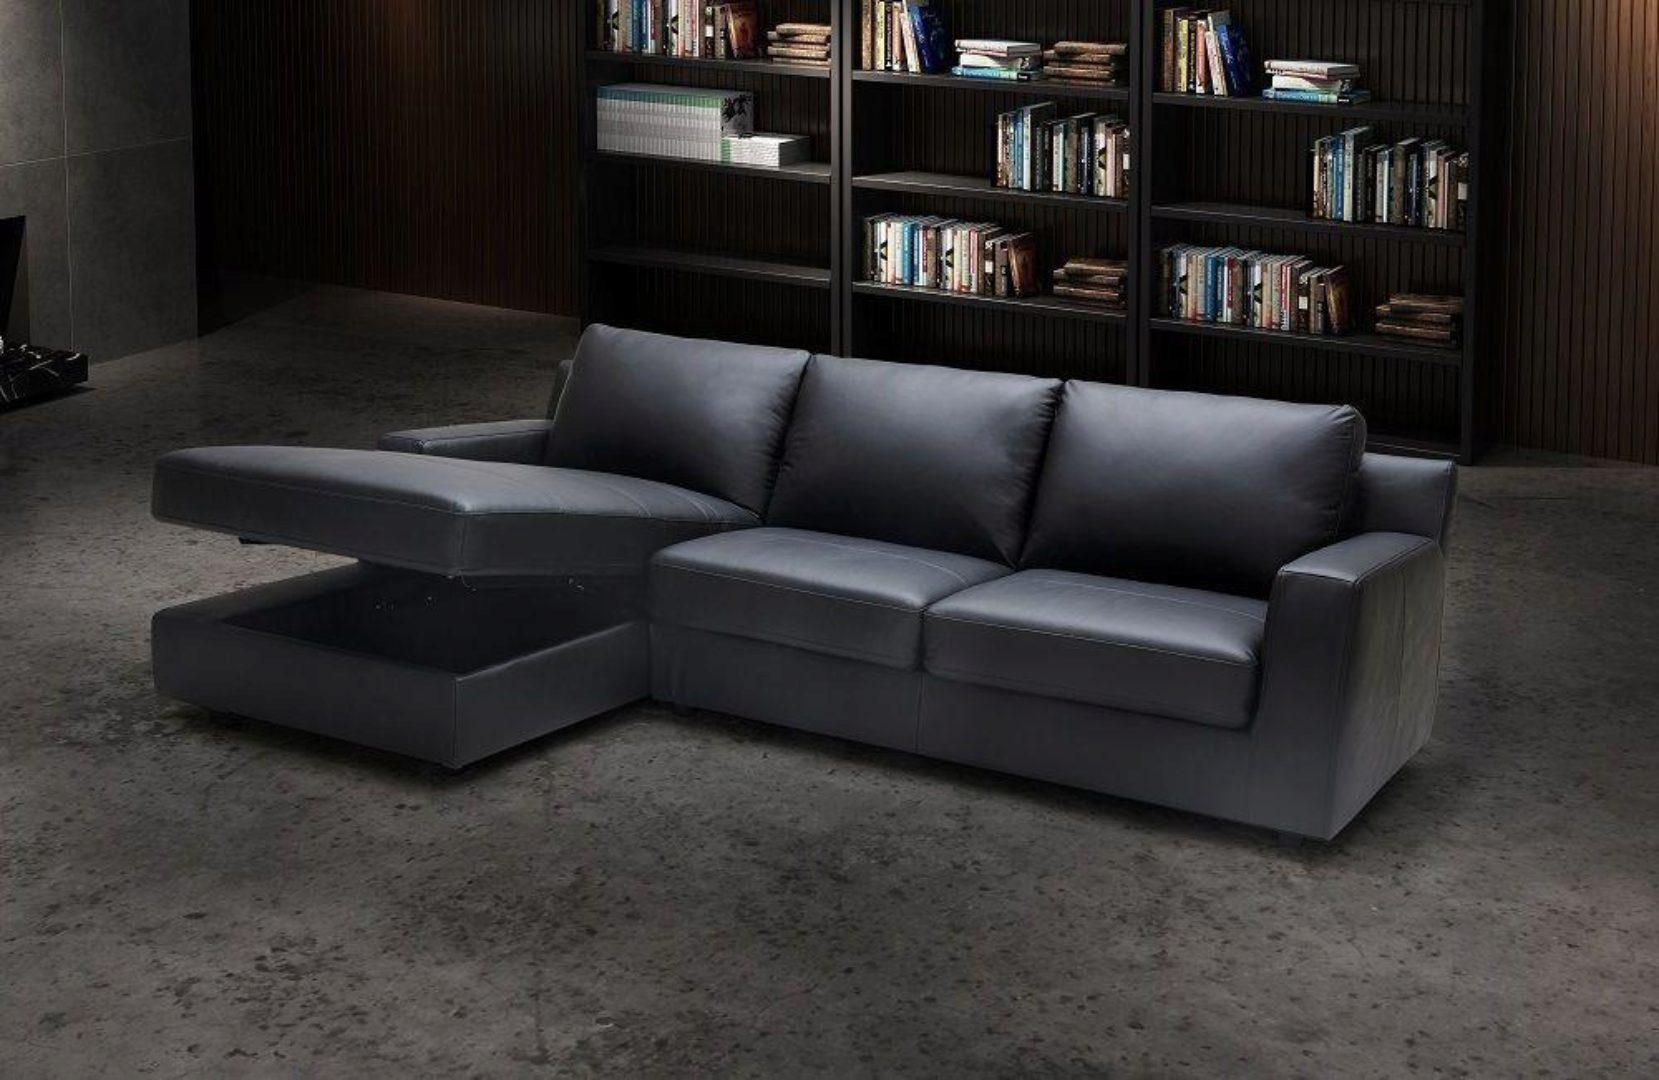 Premium Grey Leather Sectional Sleeper Sofa Lhc Modern J M Elizabeth Sku18242 Sectional Lhc